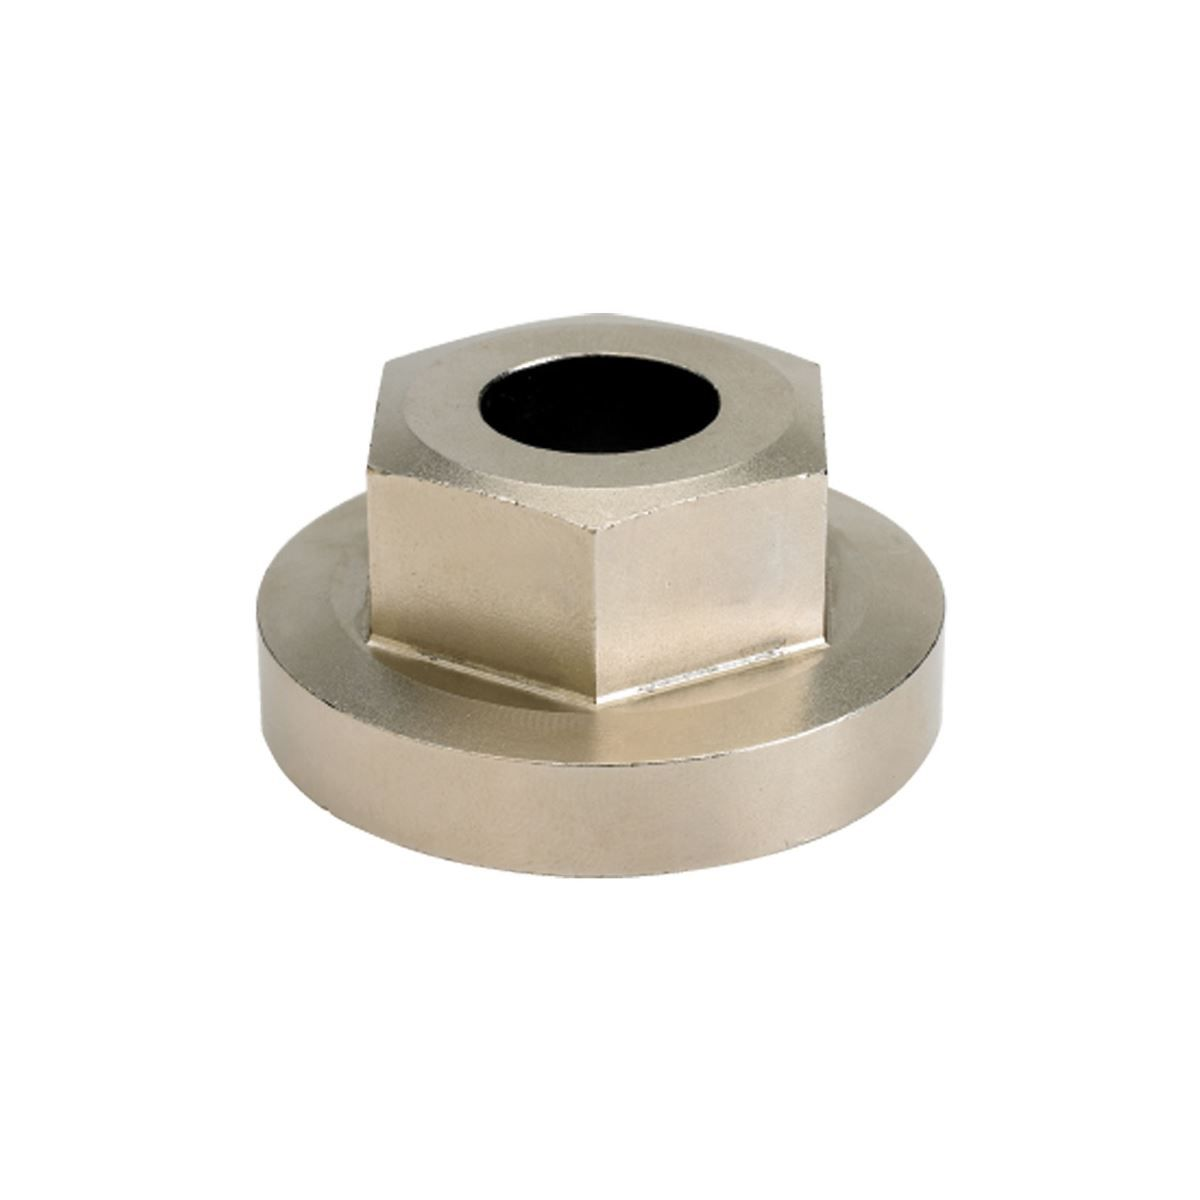 Cyclo Hollowtech Ii/Ultra Torque Bb Removal Head, Fits Gxp/Howitzer: